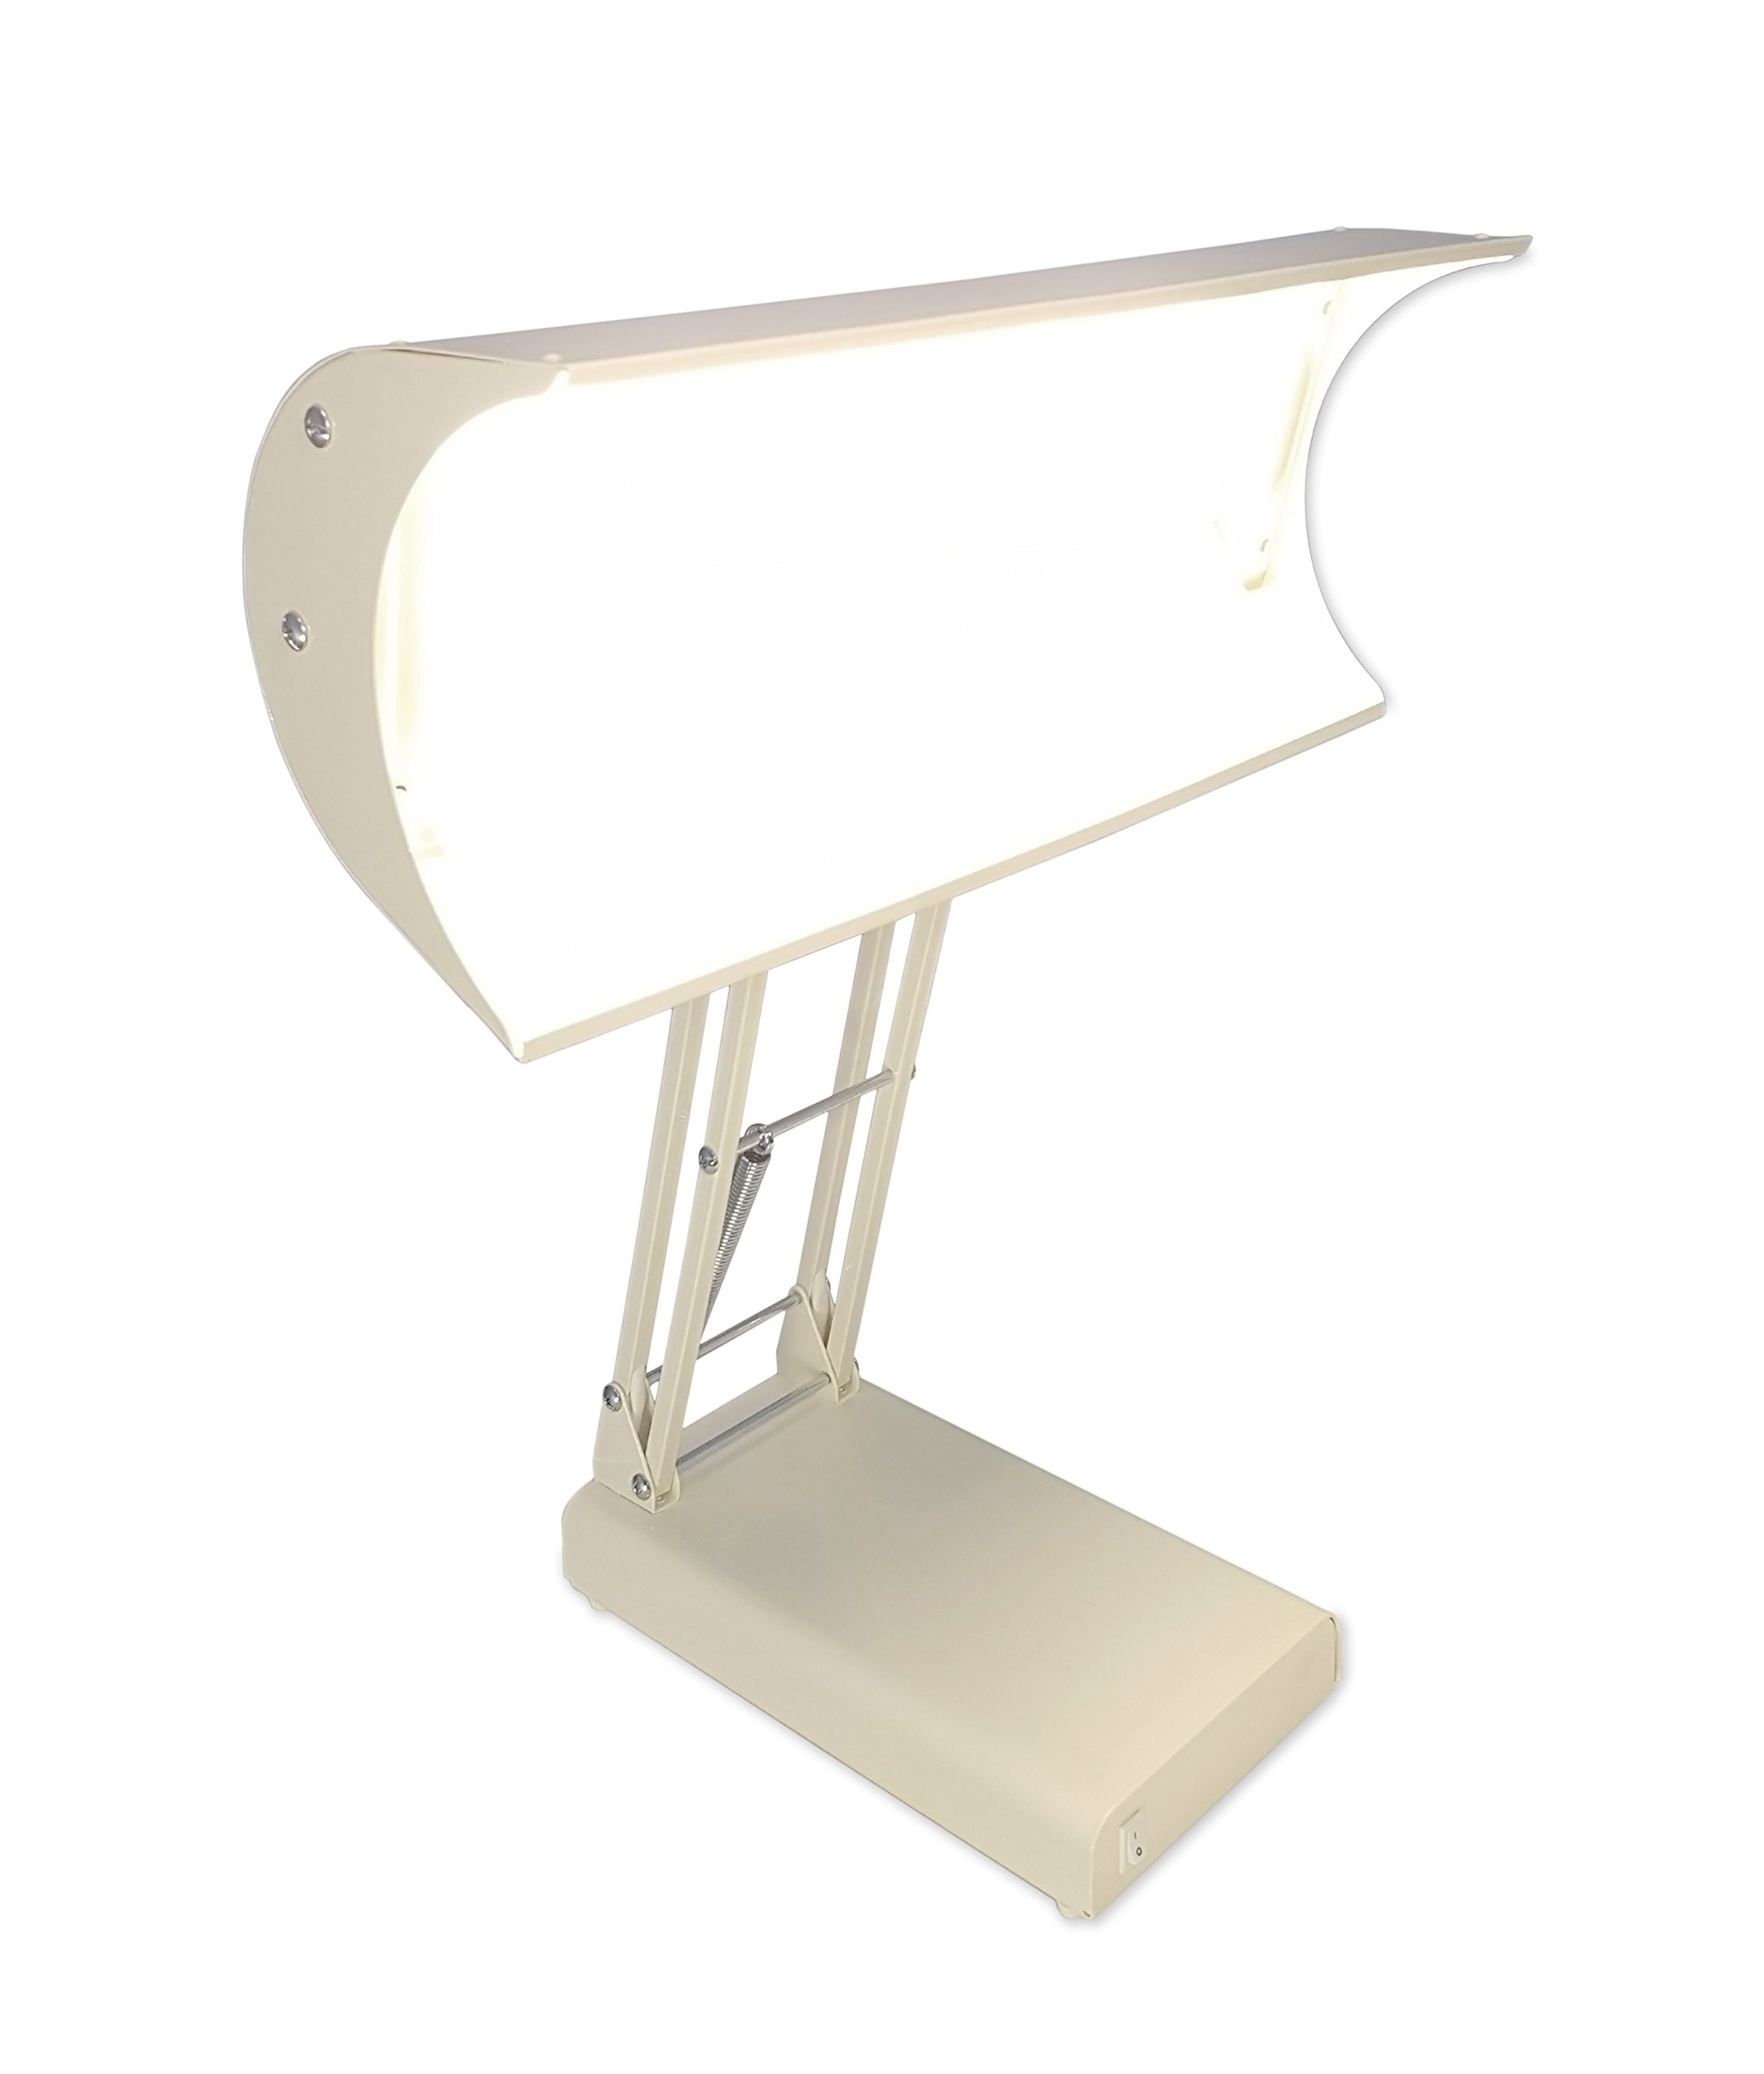 Northern Light 10,000 Lux Bright Light Therapy Desk Lamp, Beige by Northern Light Technologies (Image #5)